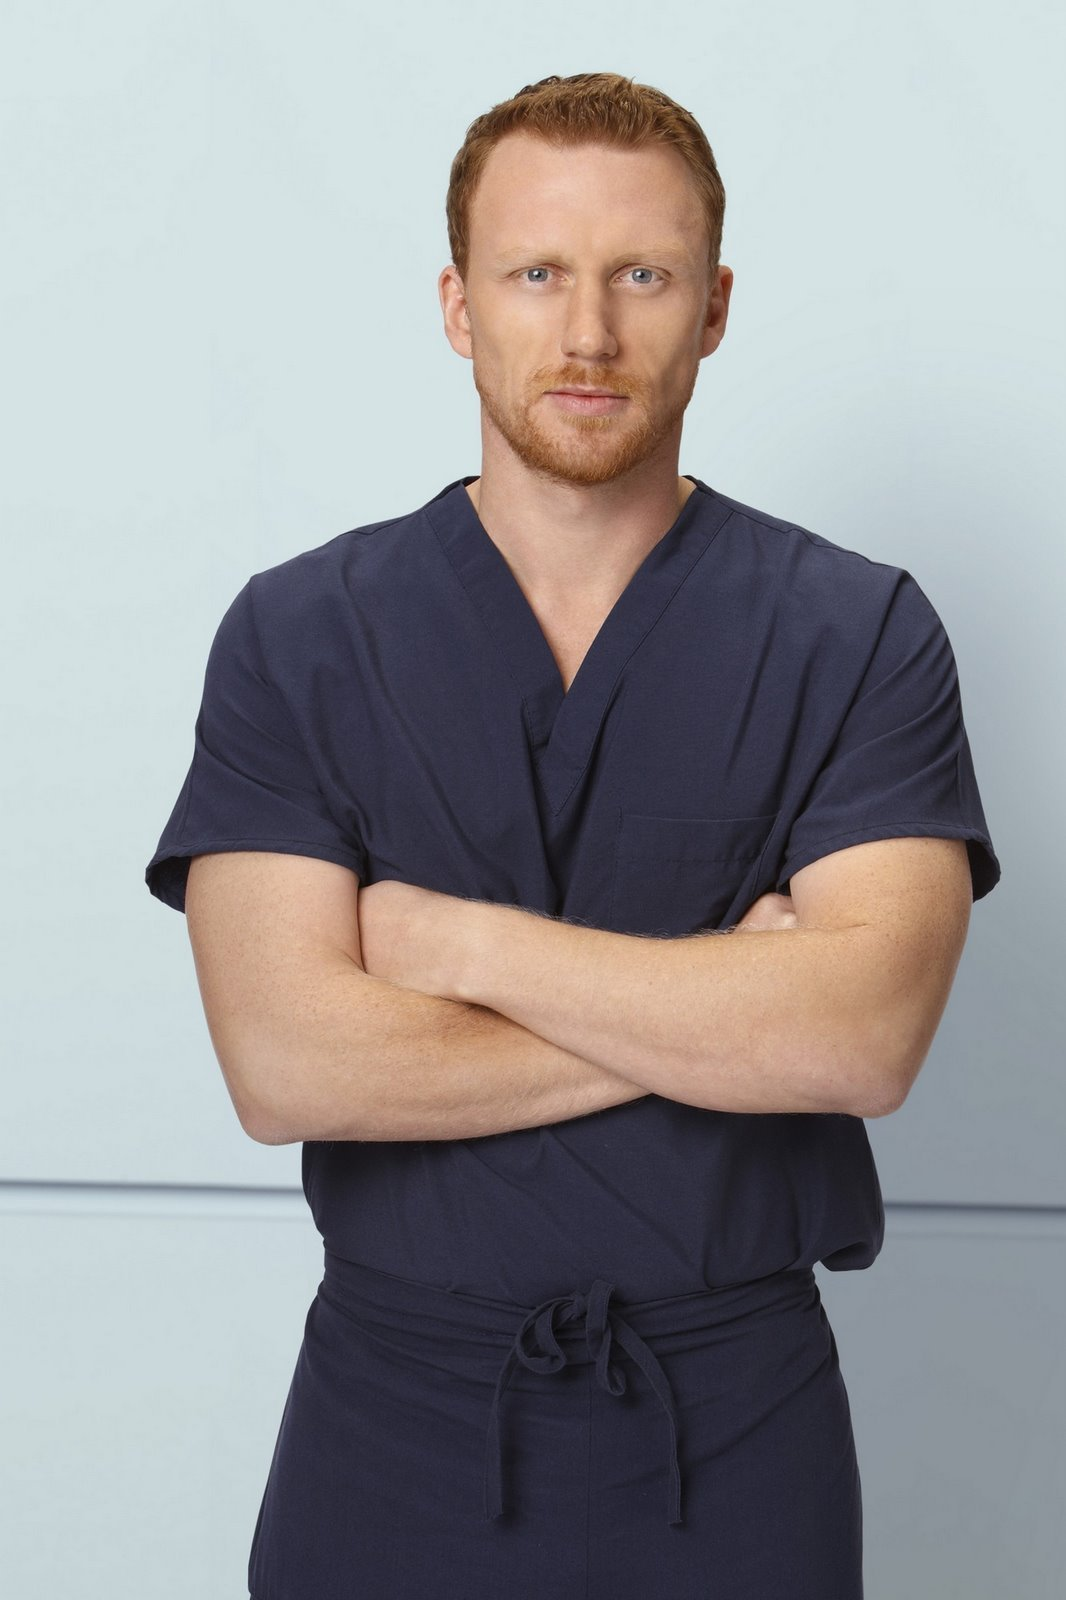 http://1.bp.blogspot.com/-qDQKJBATprA/TnY28xZNGCI/AAAAAAAAAPk/mLEaWNhhH5U/s1600/Owen-Hunt-is-Official-D-greys-anatomy-4480459-1066-1600.jpg